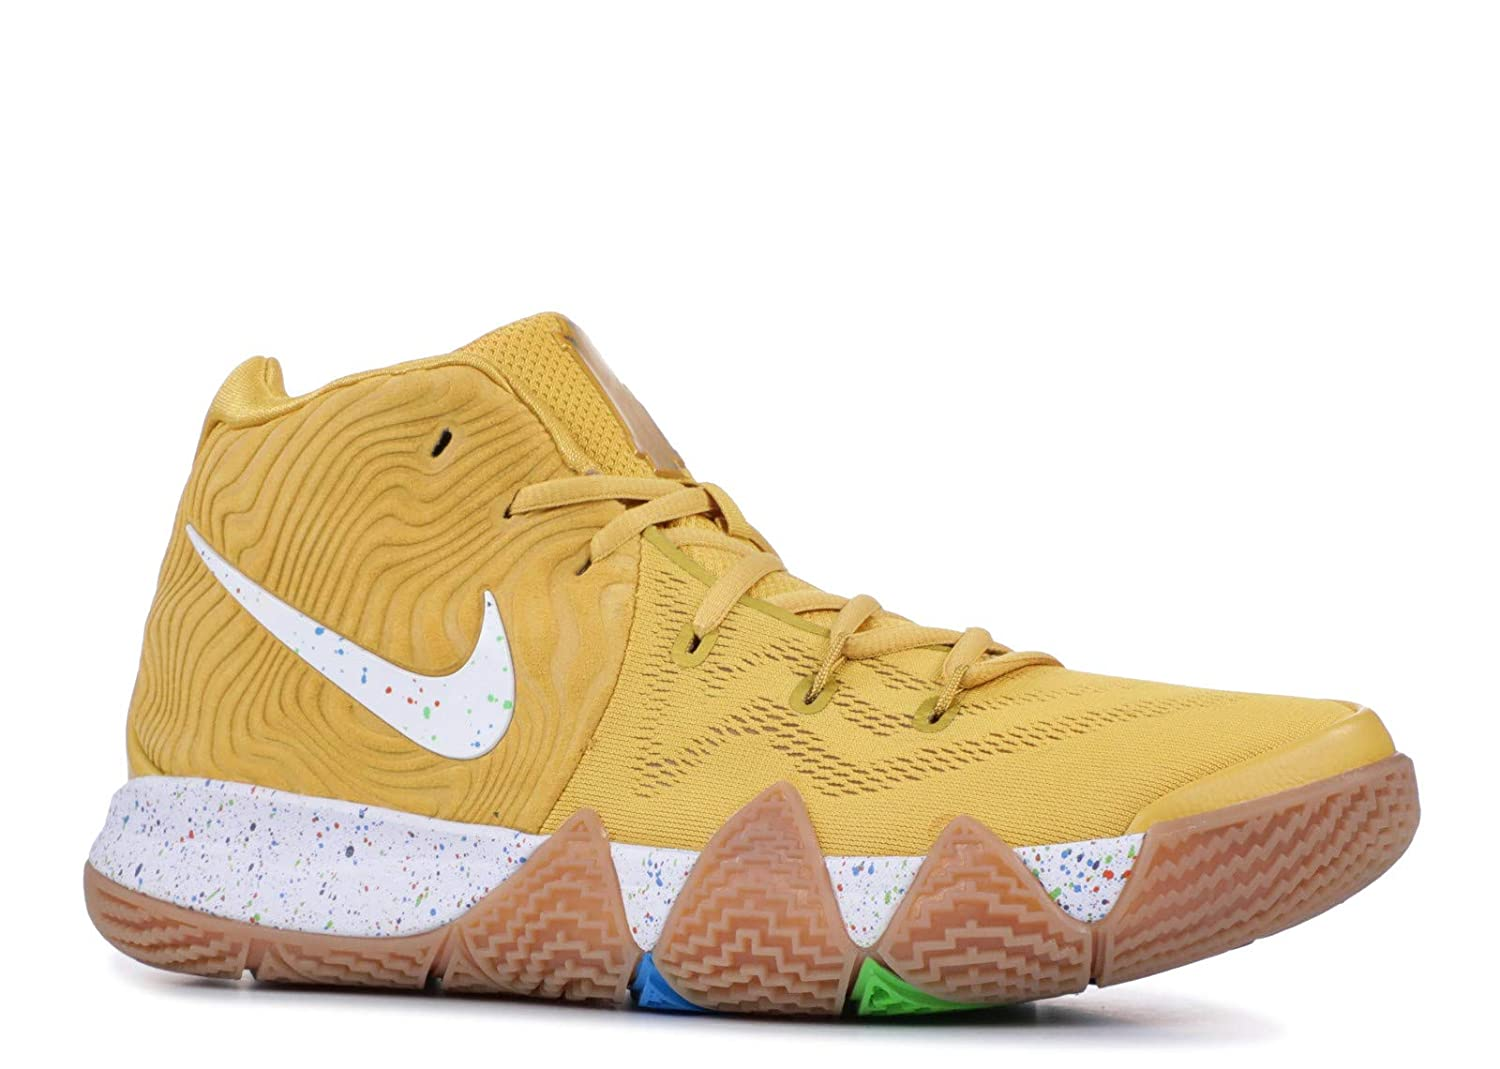 info for aff08 ff7f4 Kyrie 4 CTC - Bv0426-900 - Size 12.5